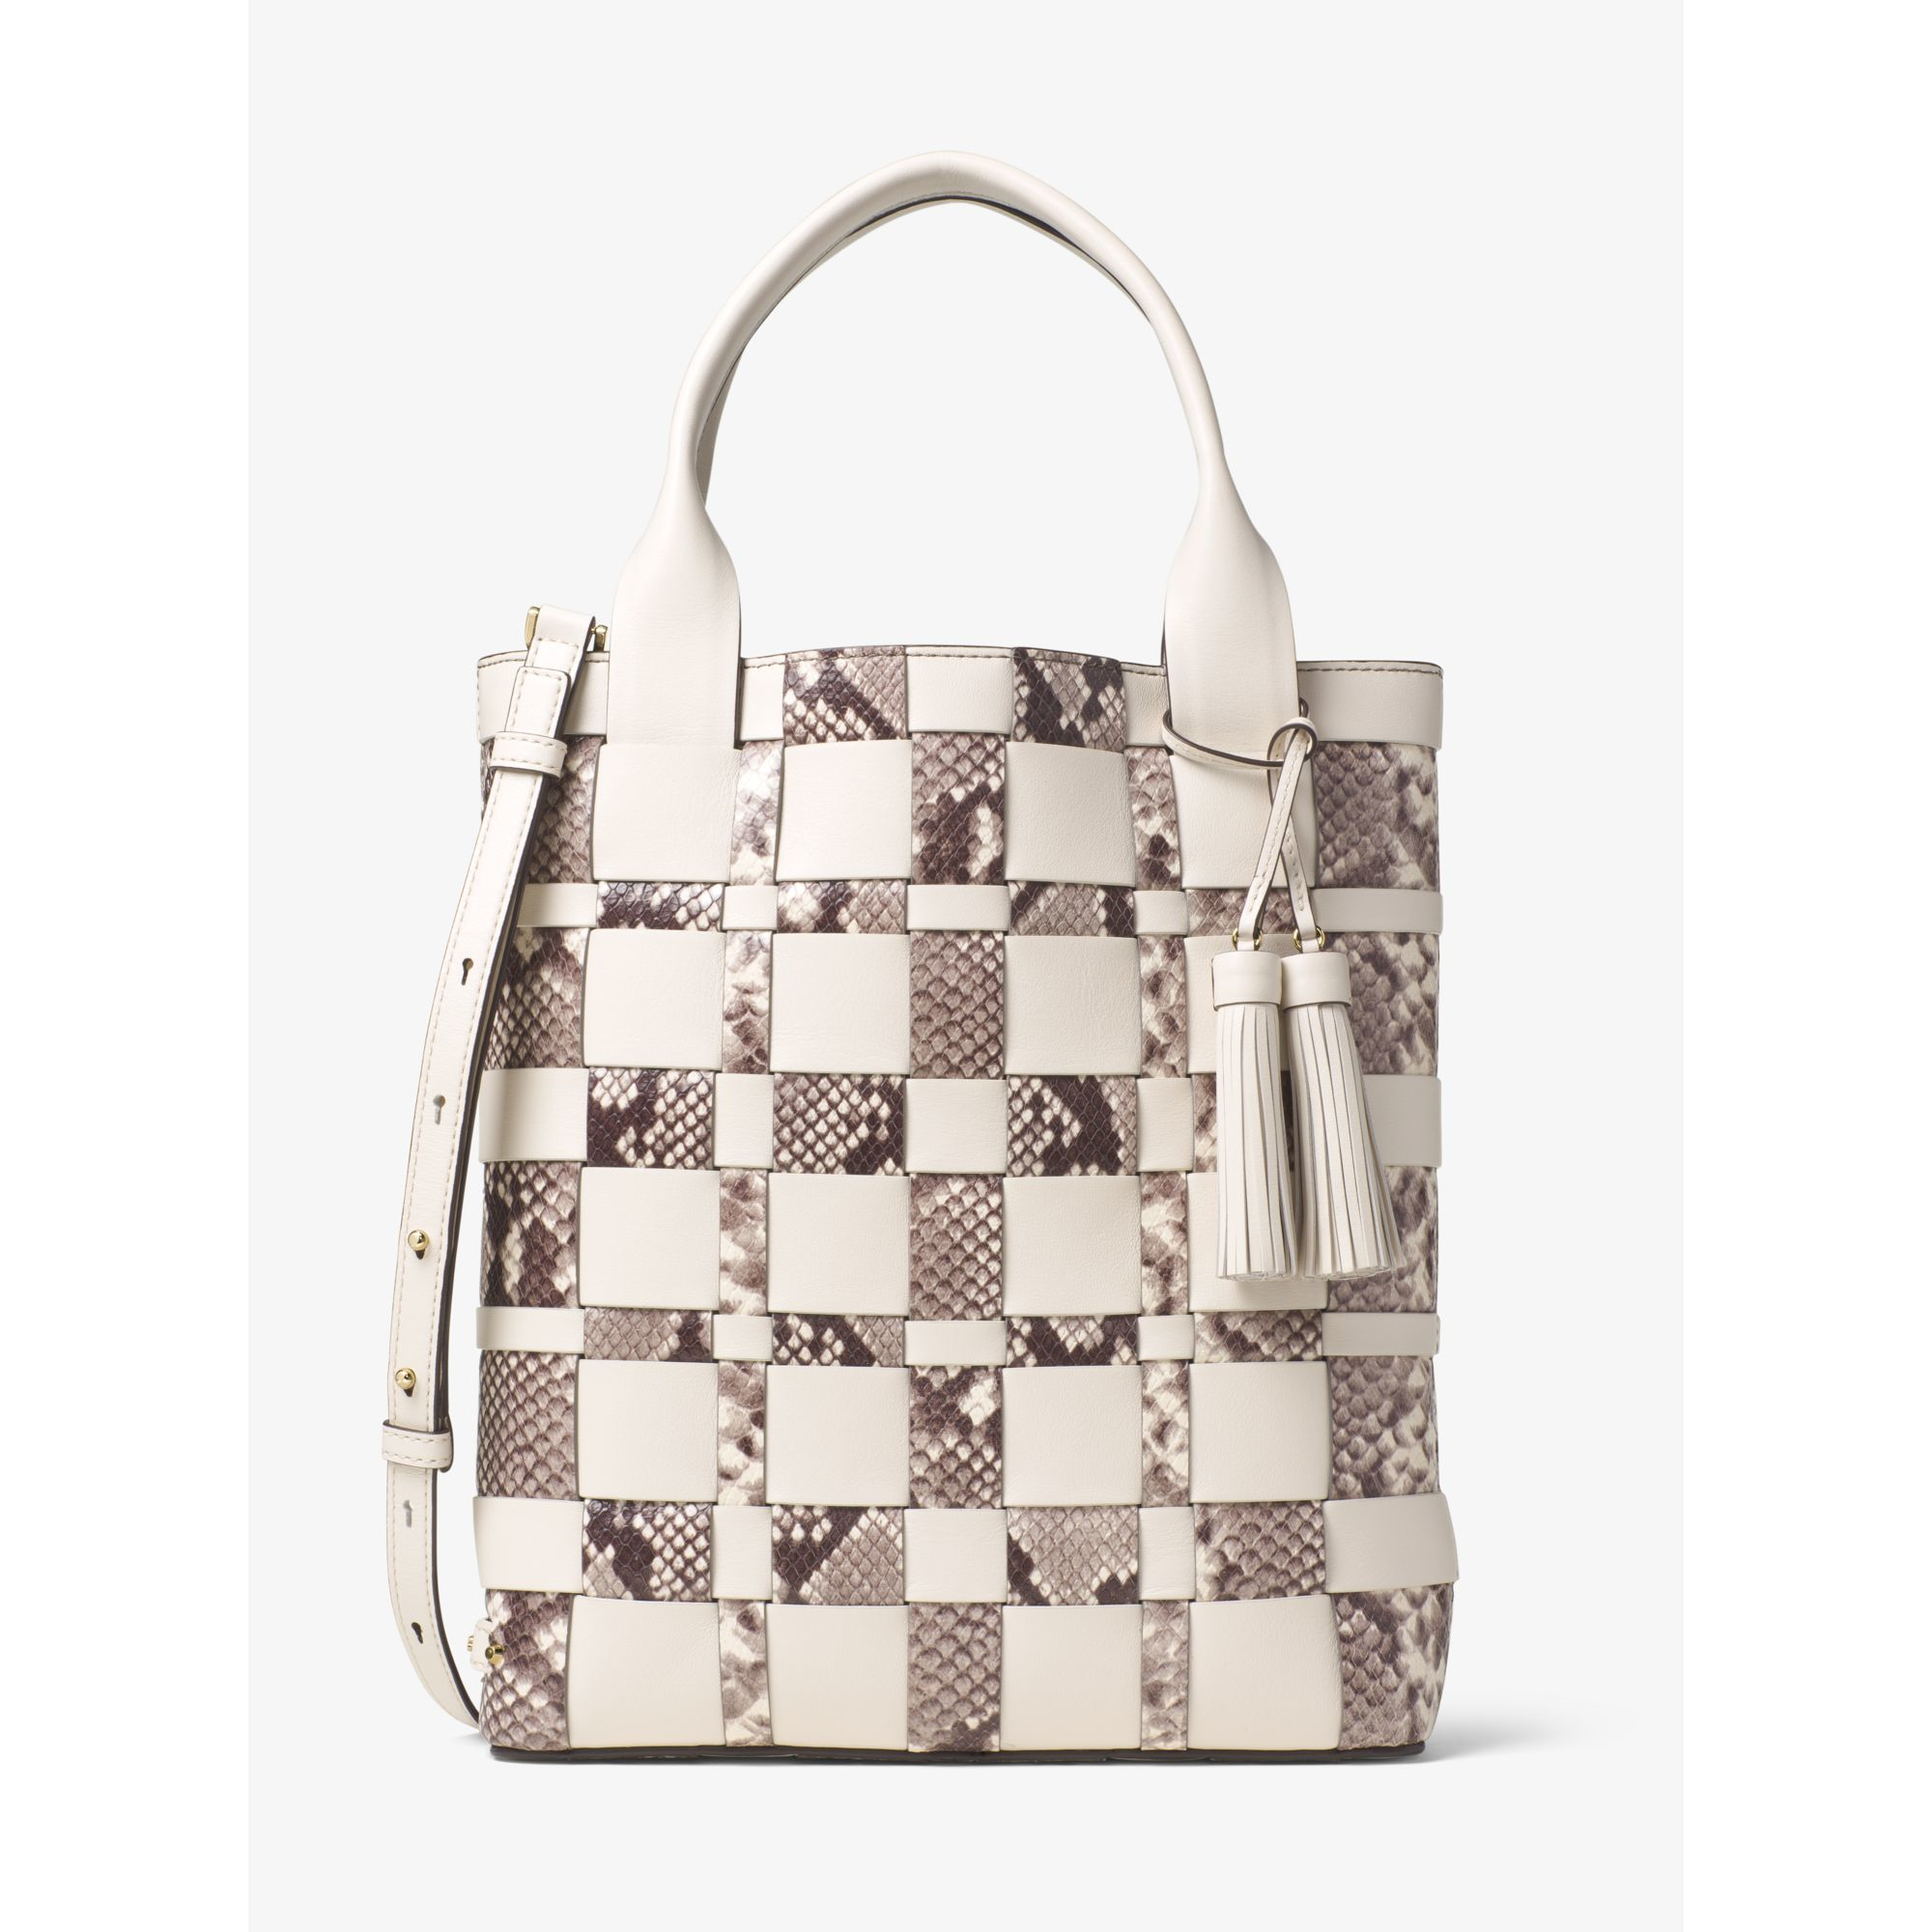 Lyst - Michael Kors Vivian Large Woven Leather Tote in Natural 5c309a8b96a8e